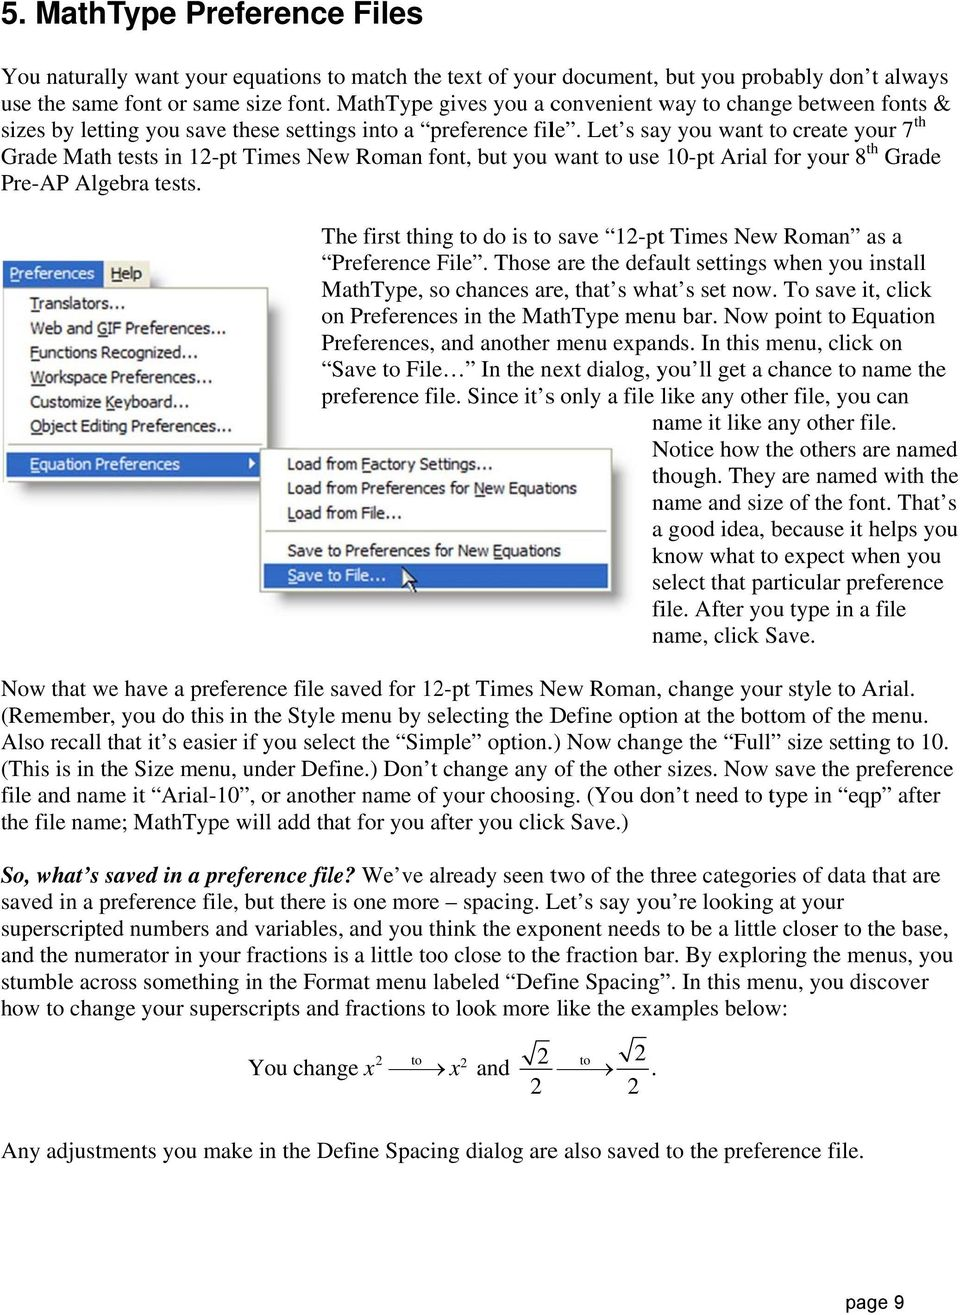 Microsoft Word 2003, Times new roman font is always Italicized?